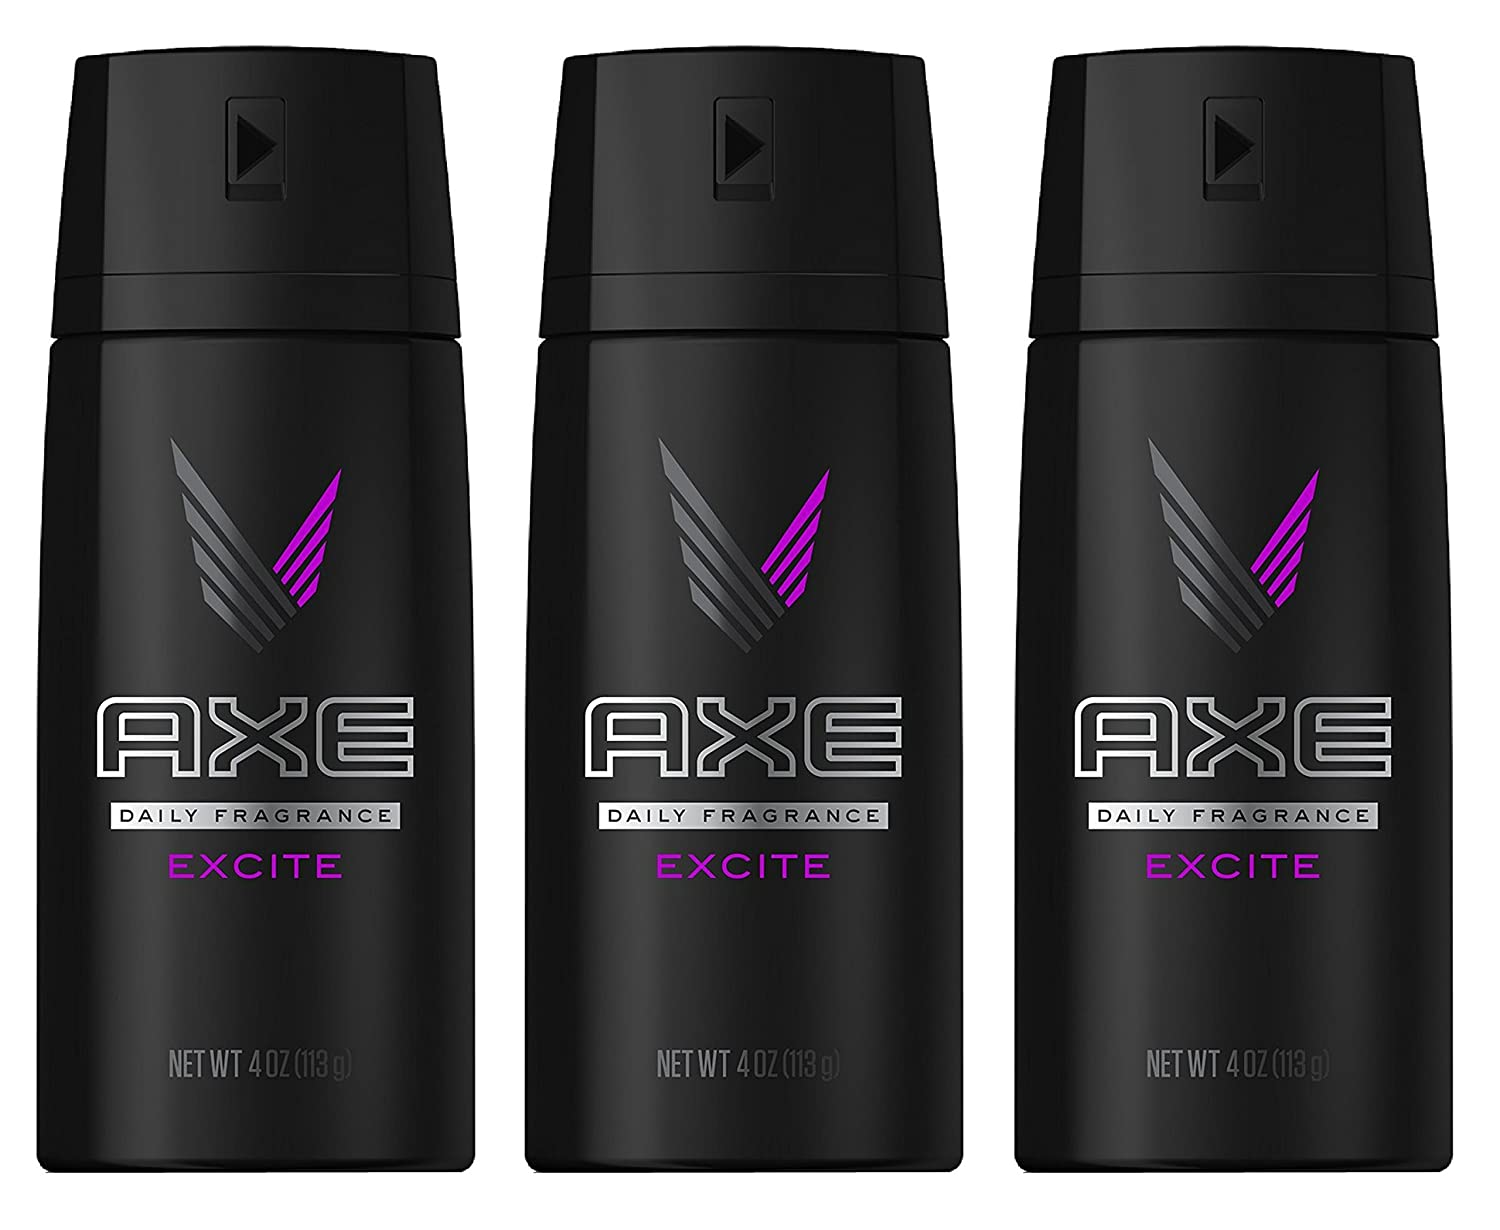 Axe Daily Fragrance/Body Spray - Excite - Net Wt. 4 OZ (113 g) Each - Pack of 3